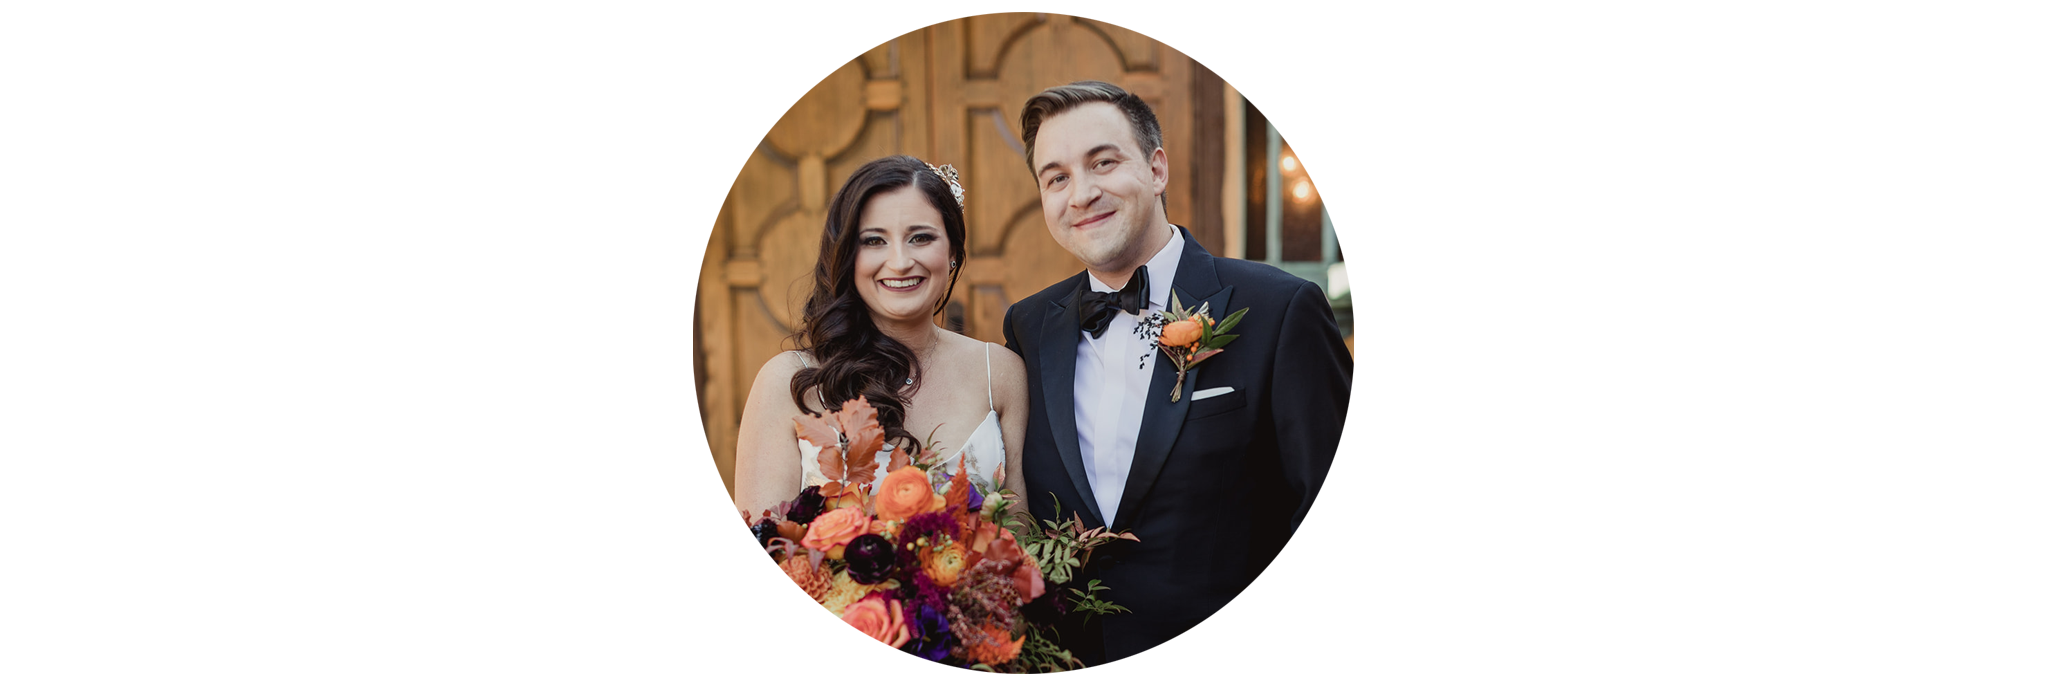 best dallas fort worth destination wedding photographer.png